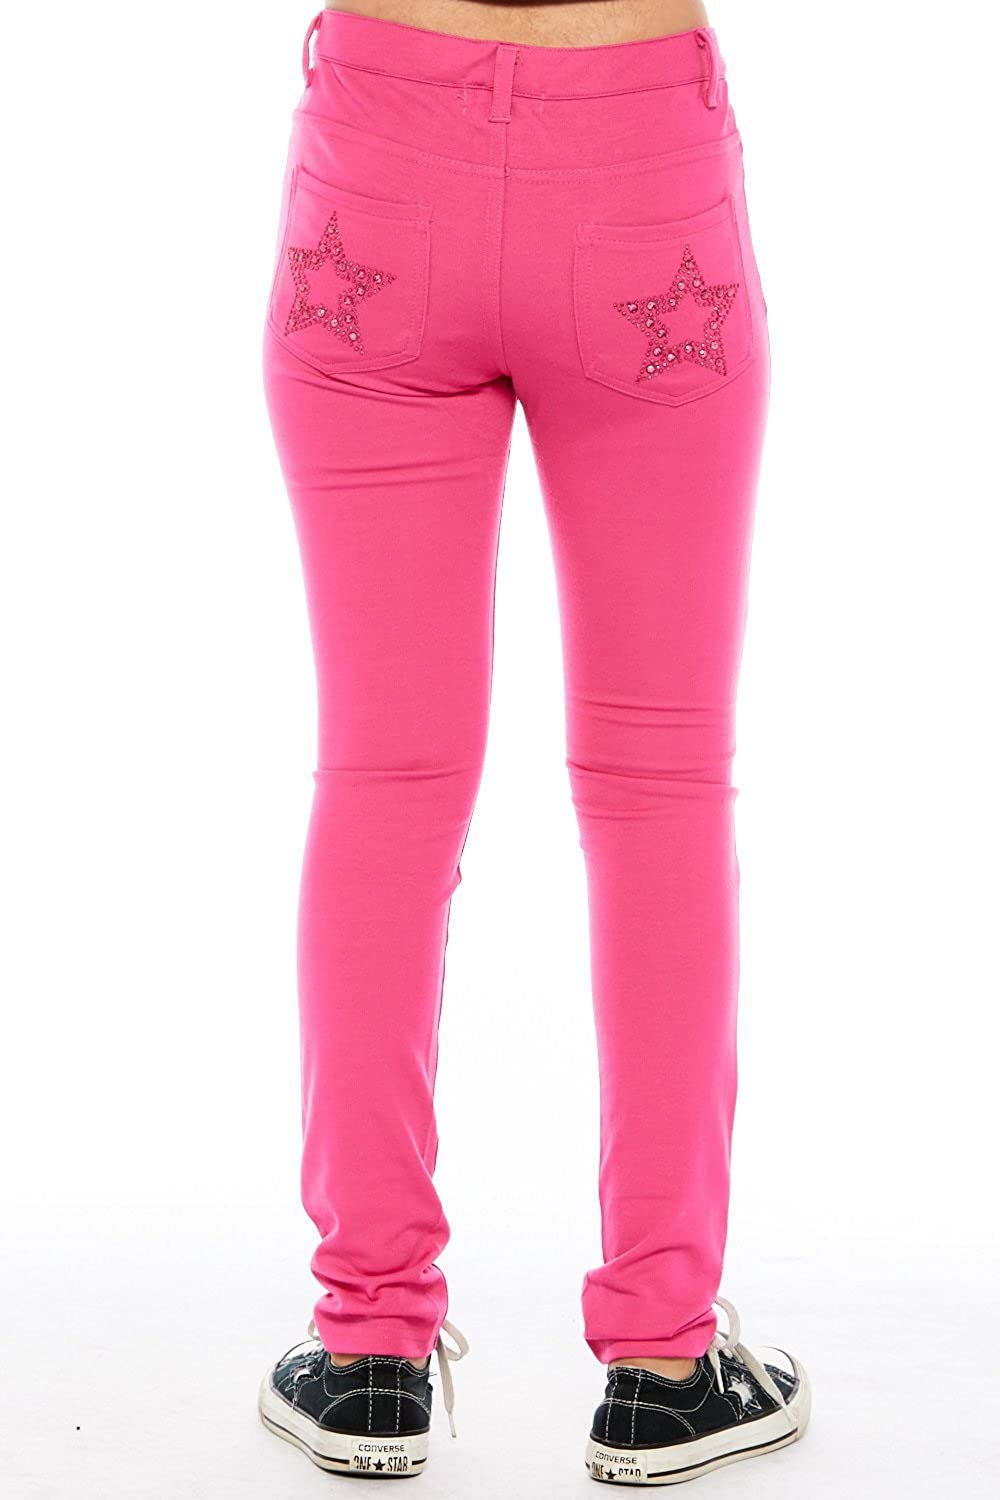 Girls Kids Cute Comfy Star Bedazzled Color Skinny Pants GJJSTAR